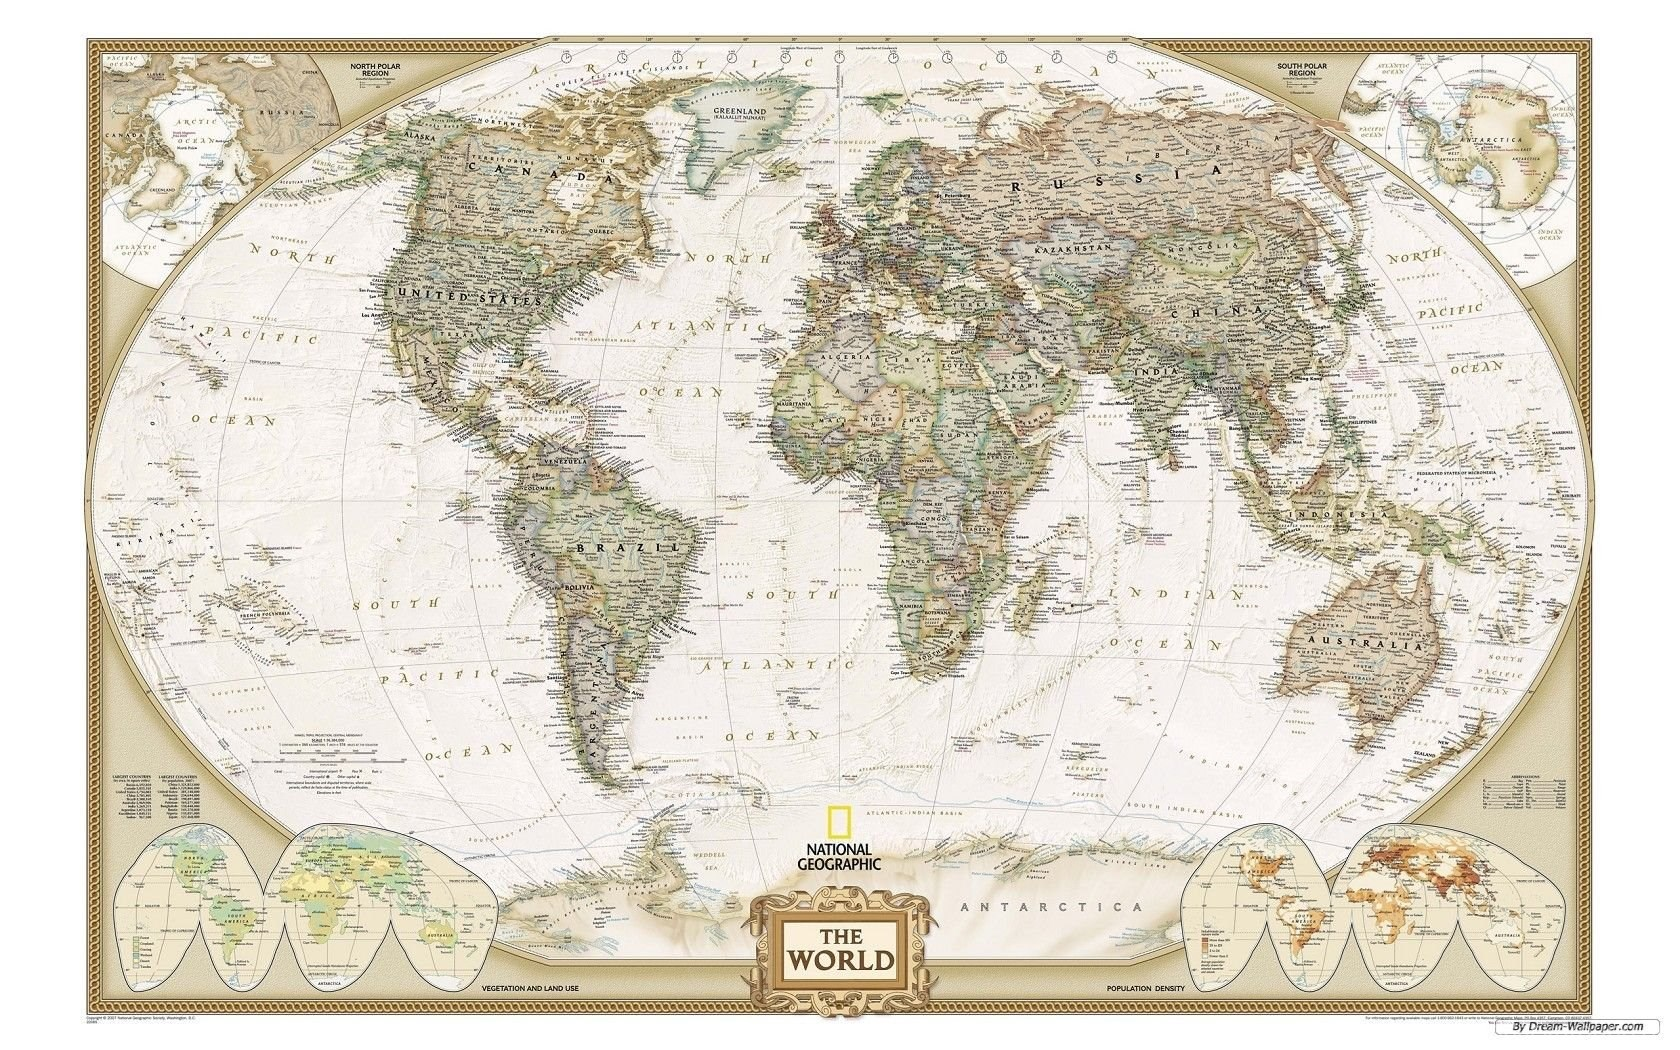 Free wallpapers free travel wallpapers world map wallpapers widescreen gumiabroncs Choice Image